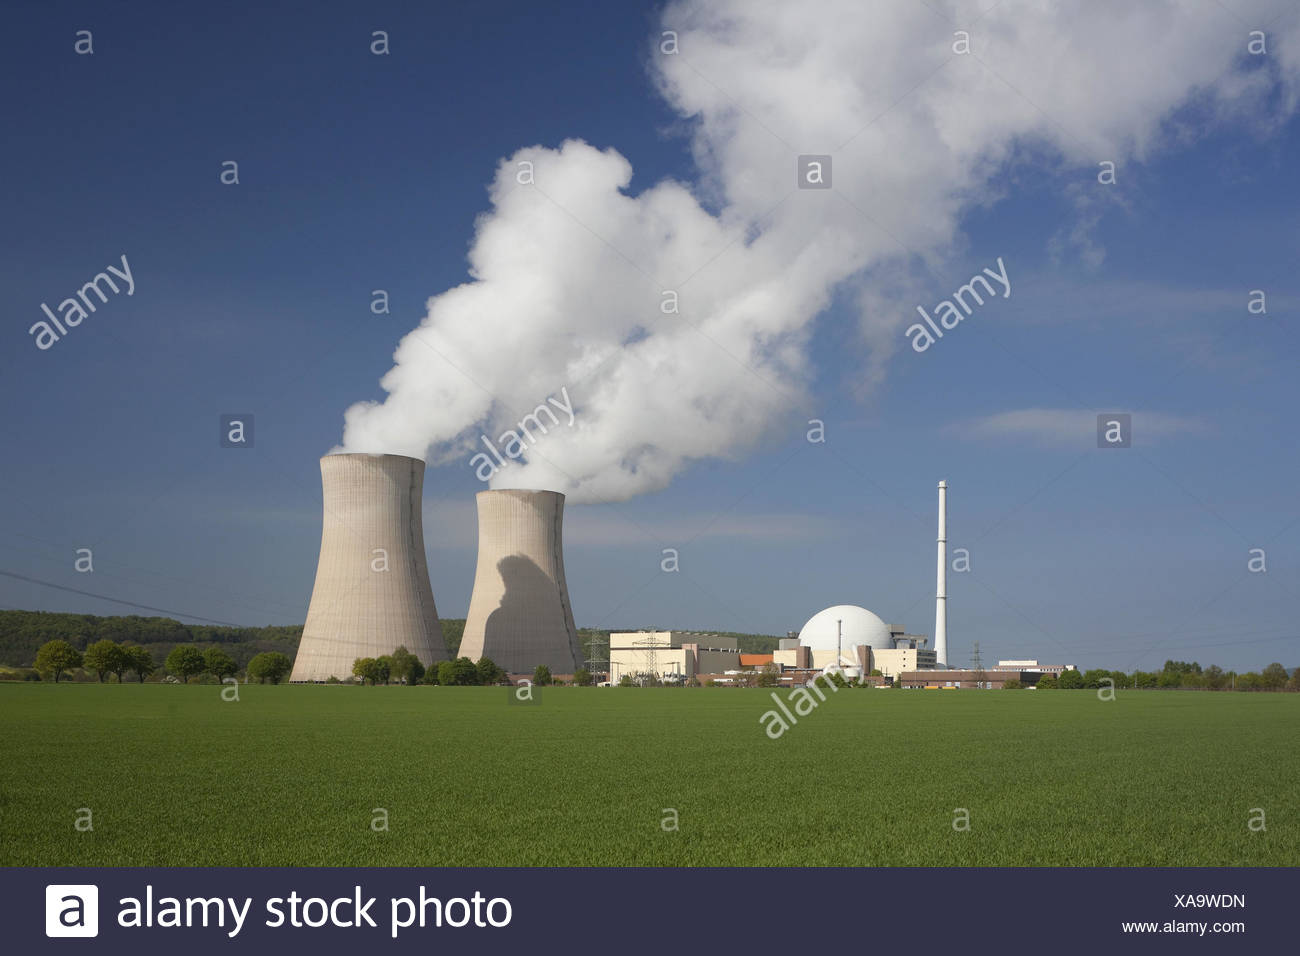 Germany, Lower Saxony, nuclear power plant Grohnde on the Weser, - Stock Image